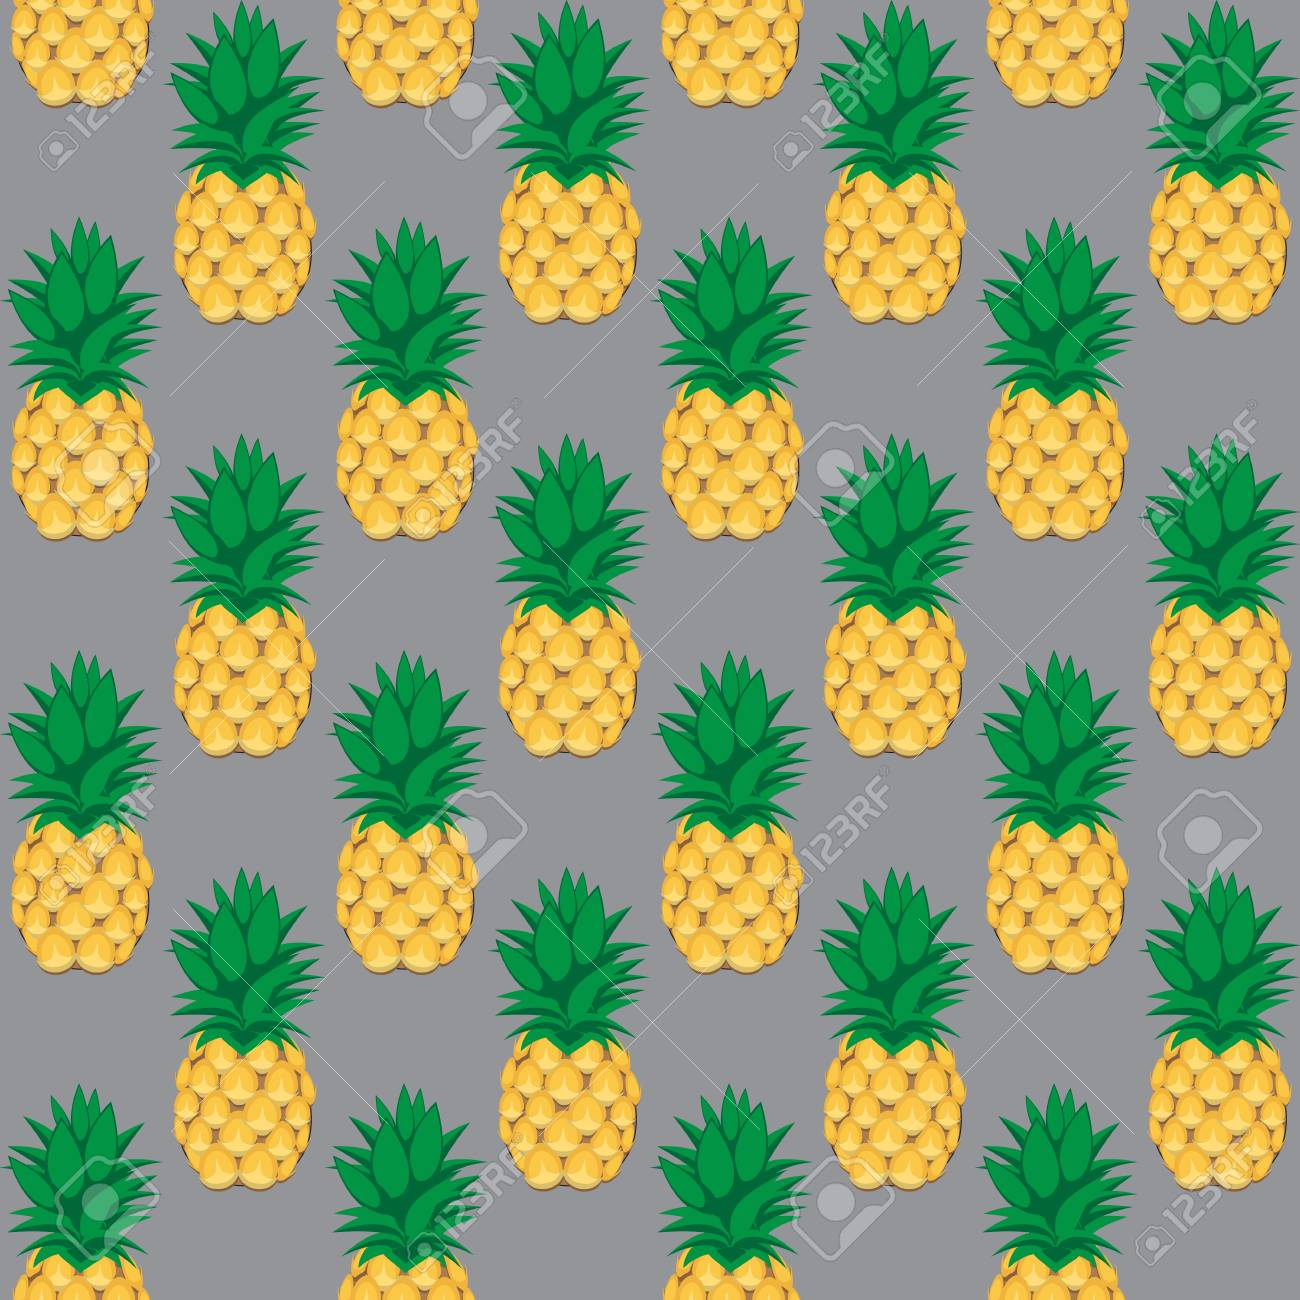 93657625 pineapple fruit contour abstract seamless pattern on grey background for wallpaper pattern web blog